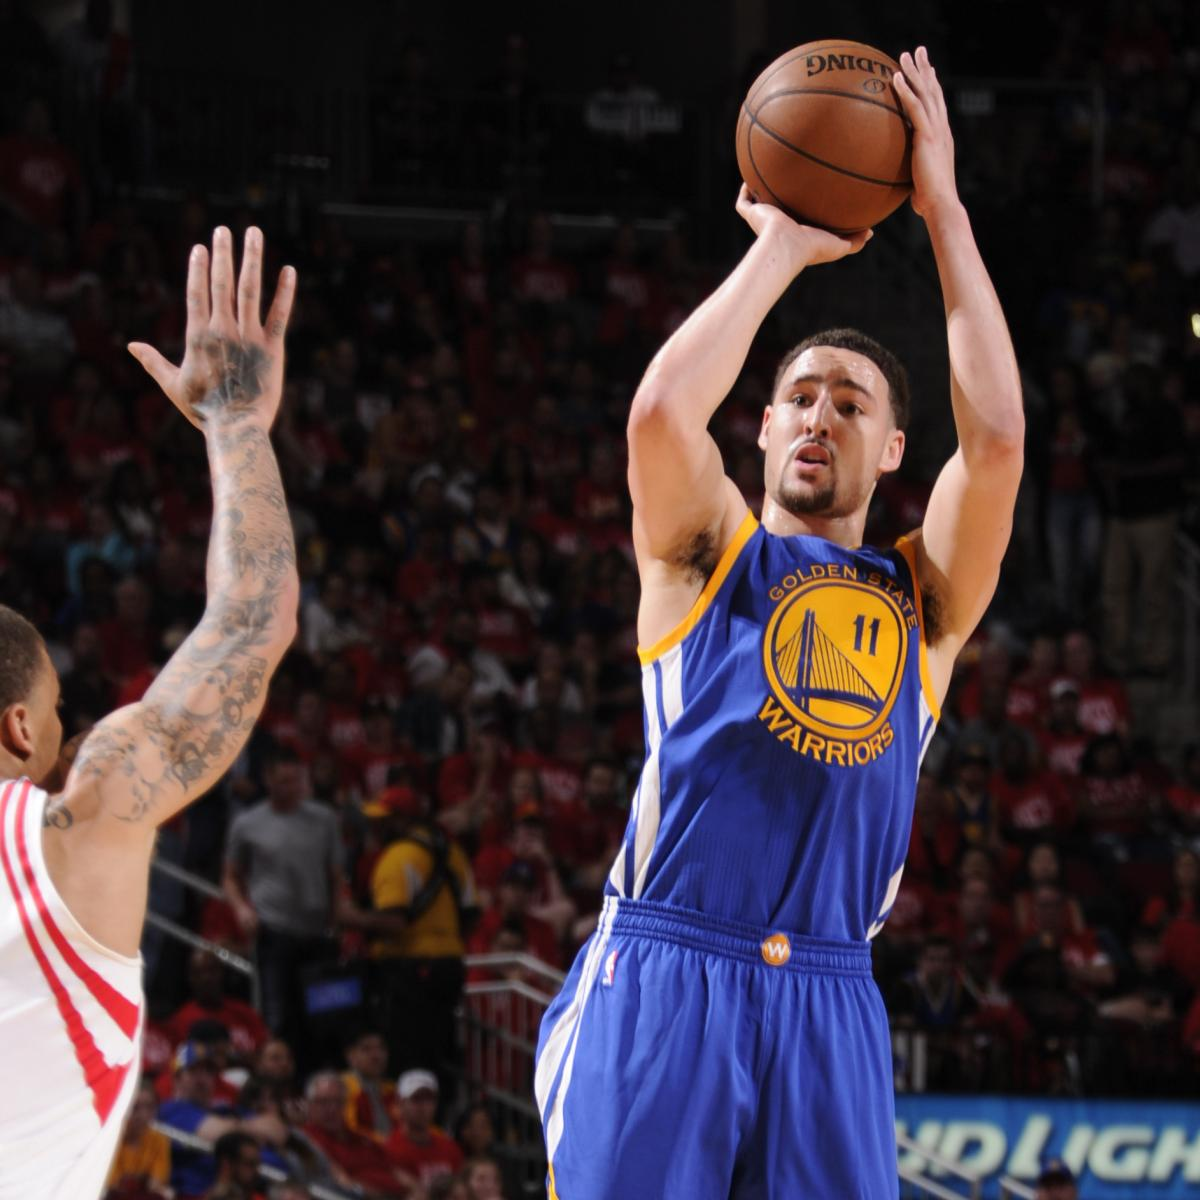 Rockets Vs Warriors Tickets Game 3: Warriors Set NBA Record Vs. Rockets For Most 3-Pointers In